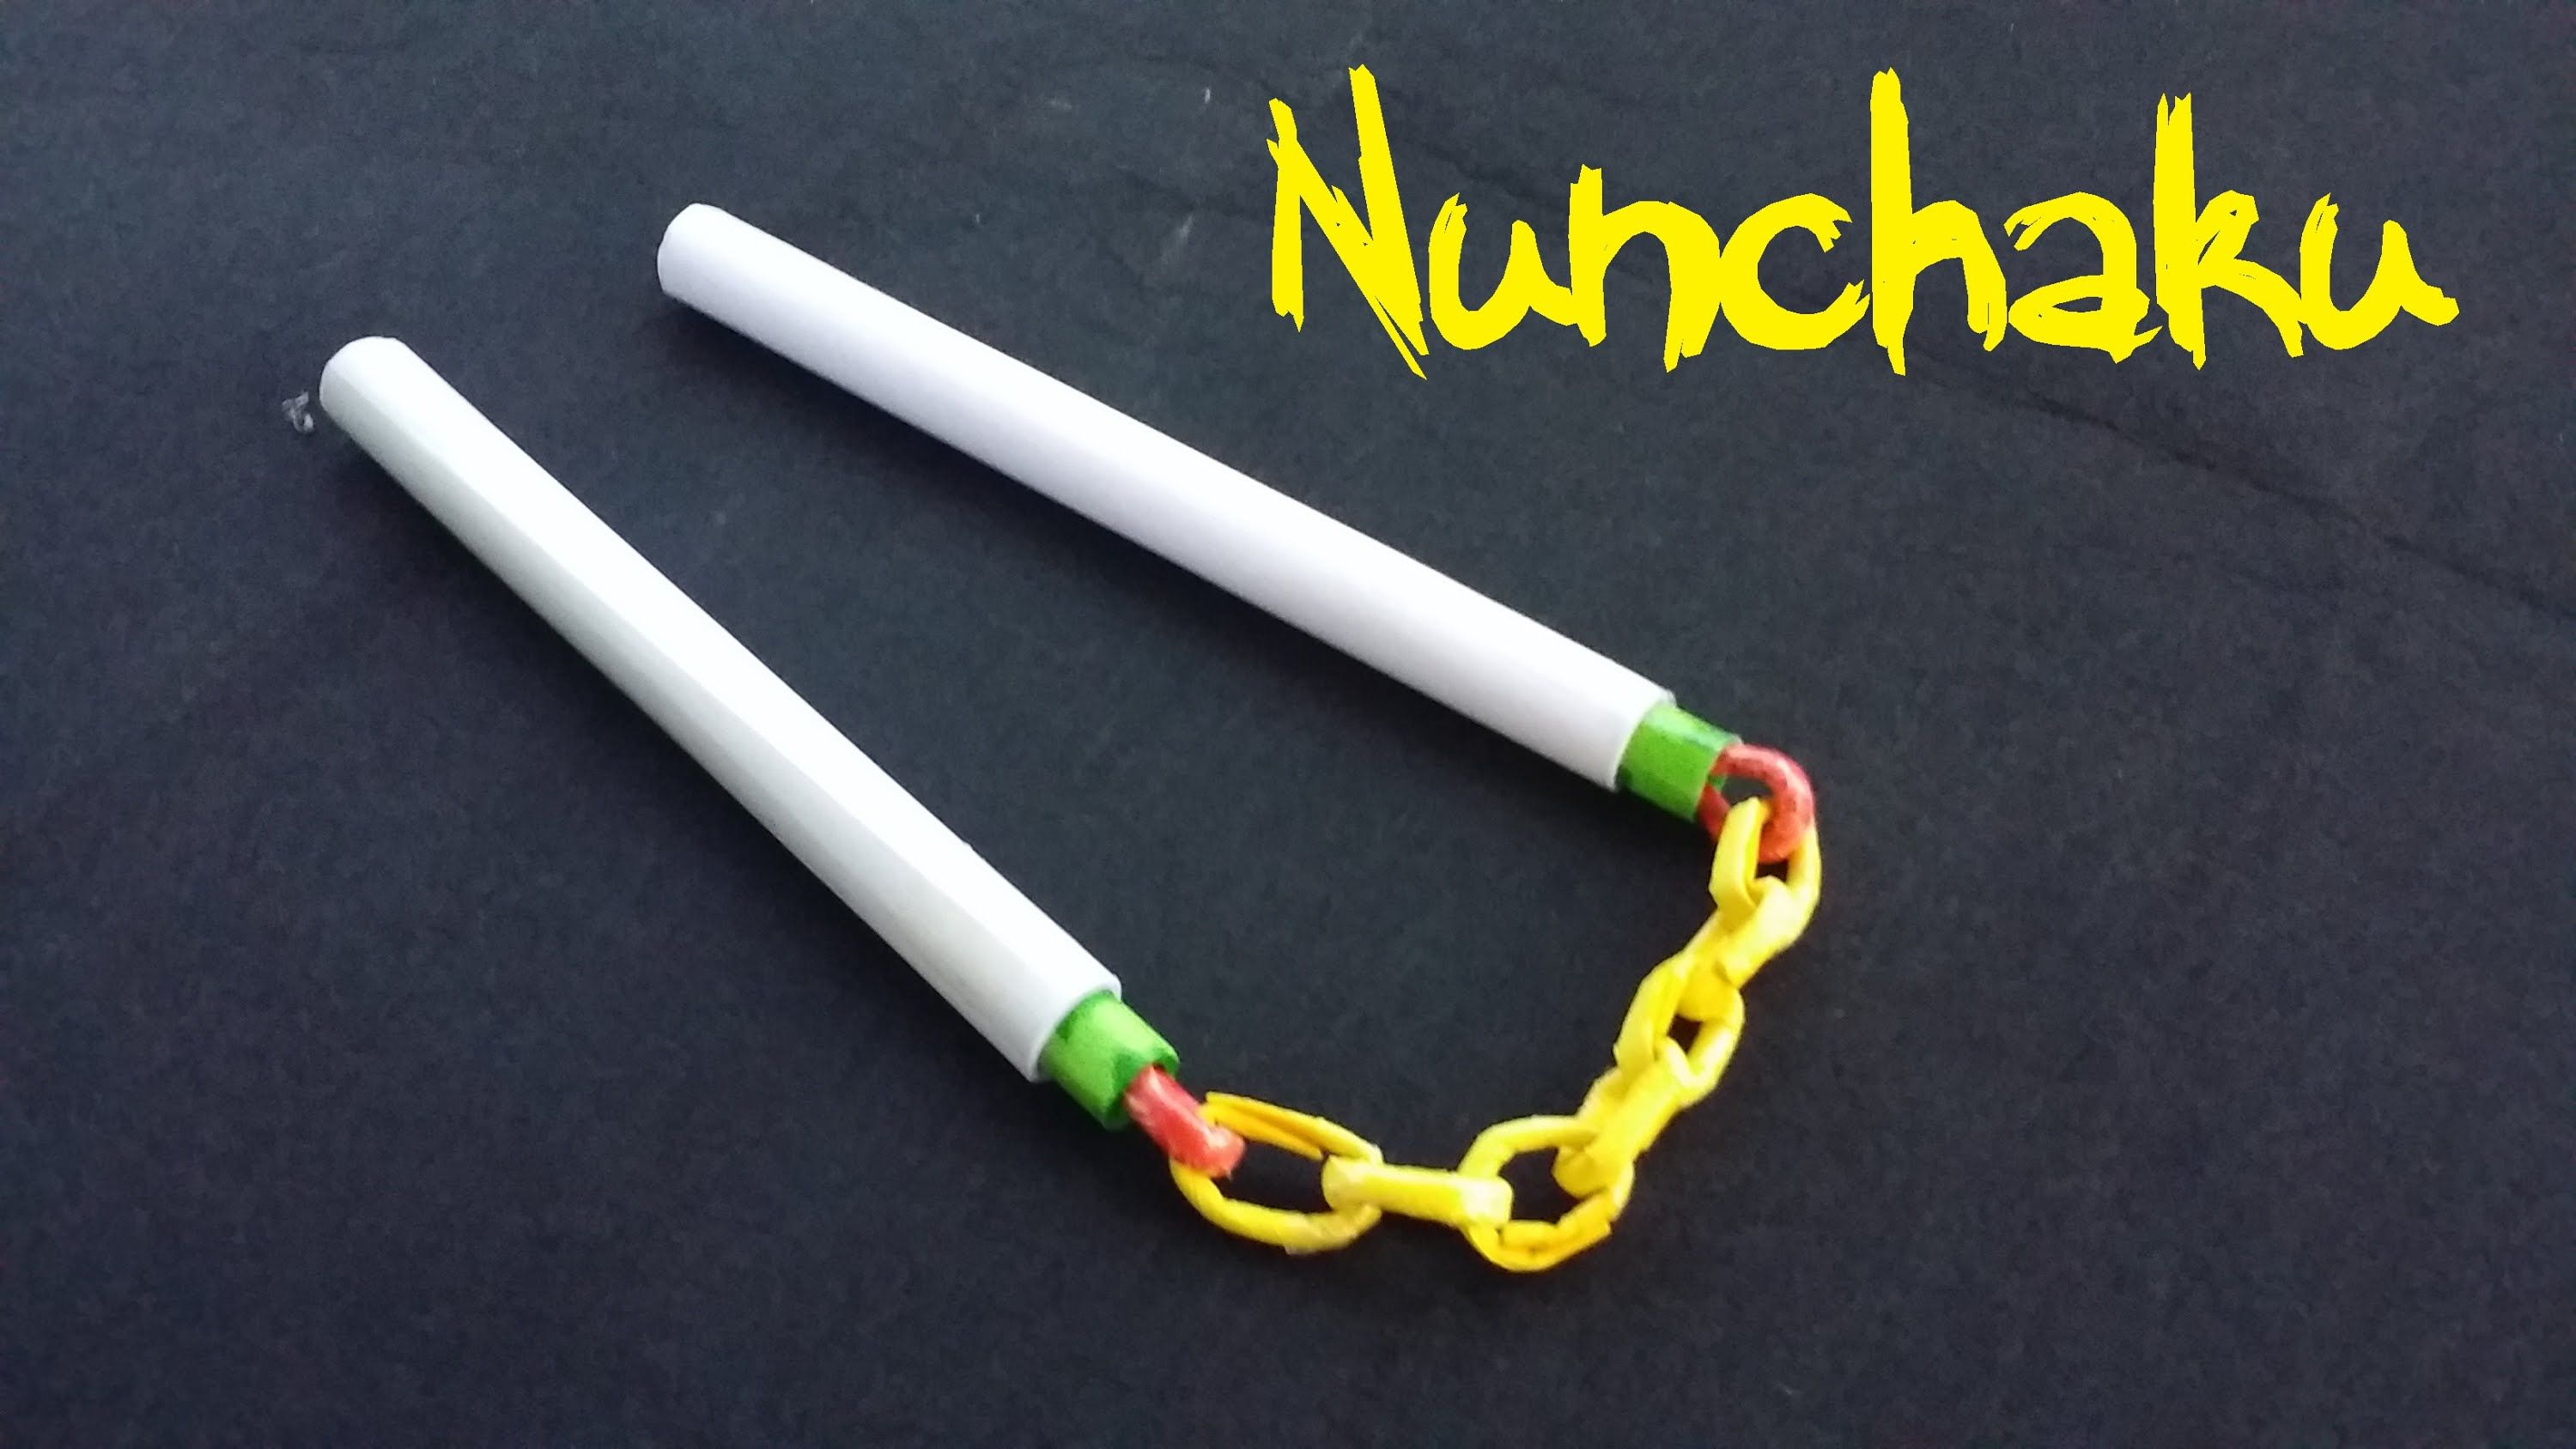 How to make paper nunchuck: master class 11